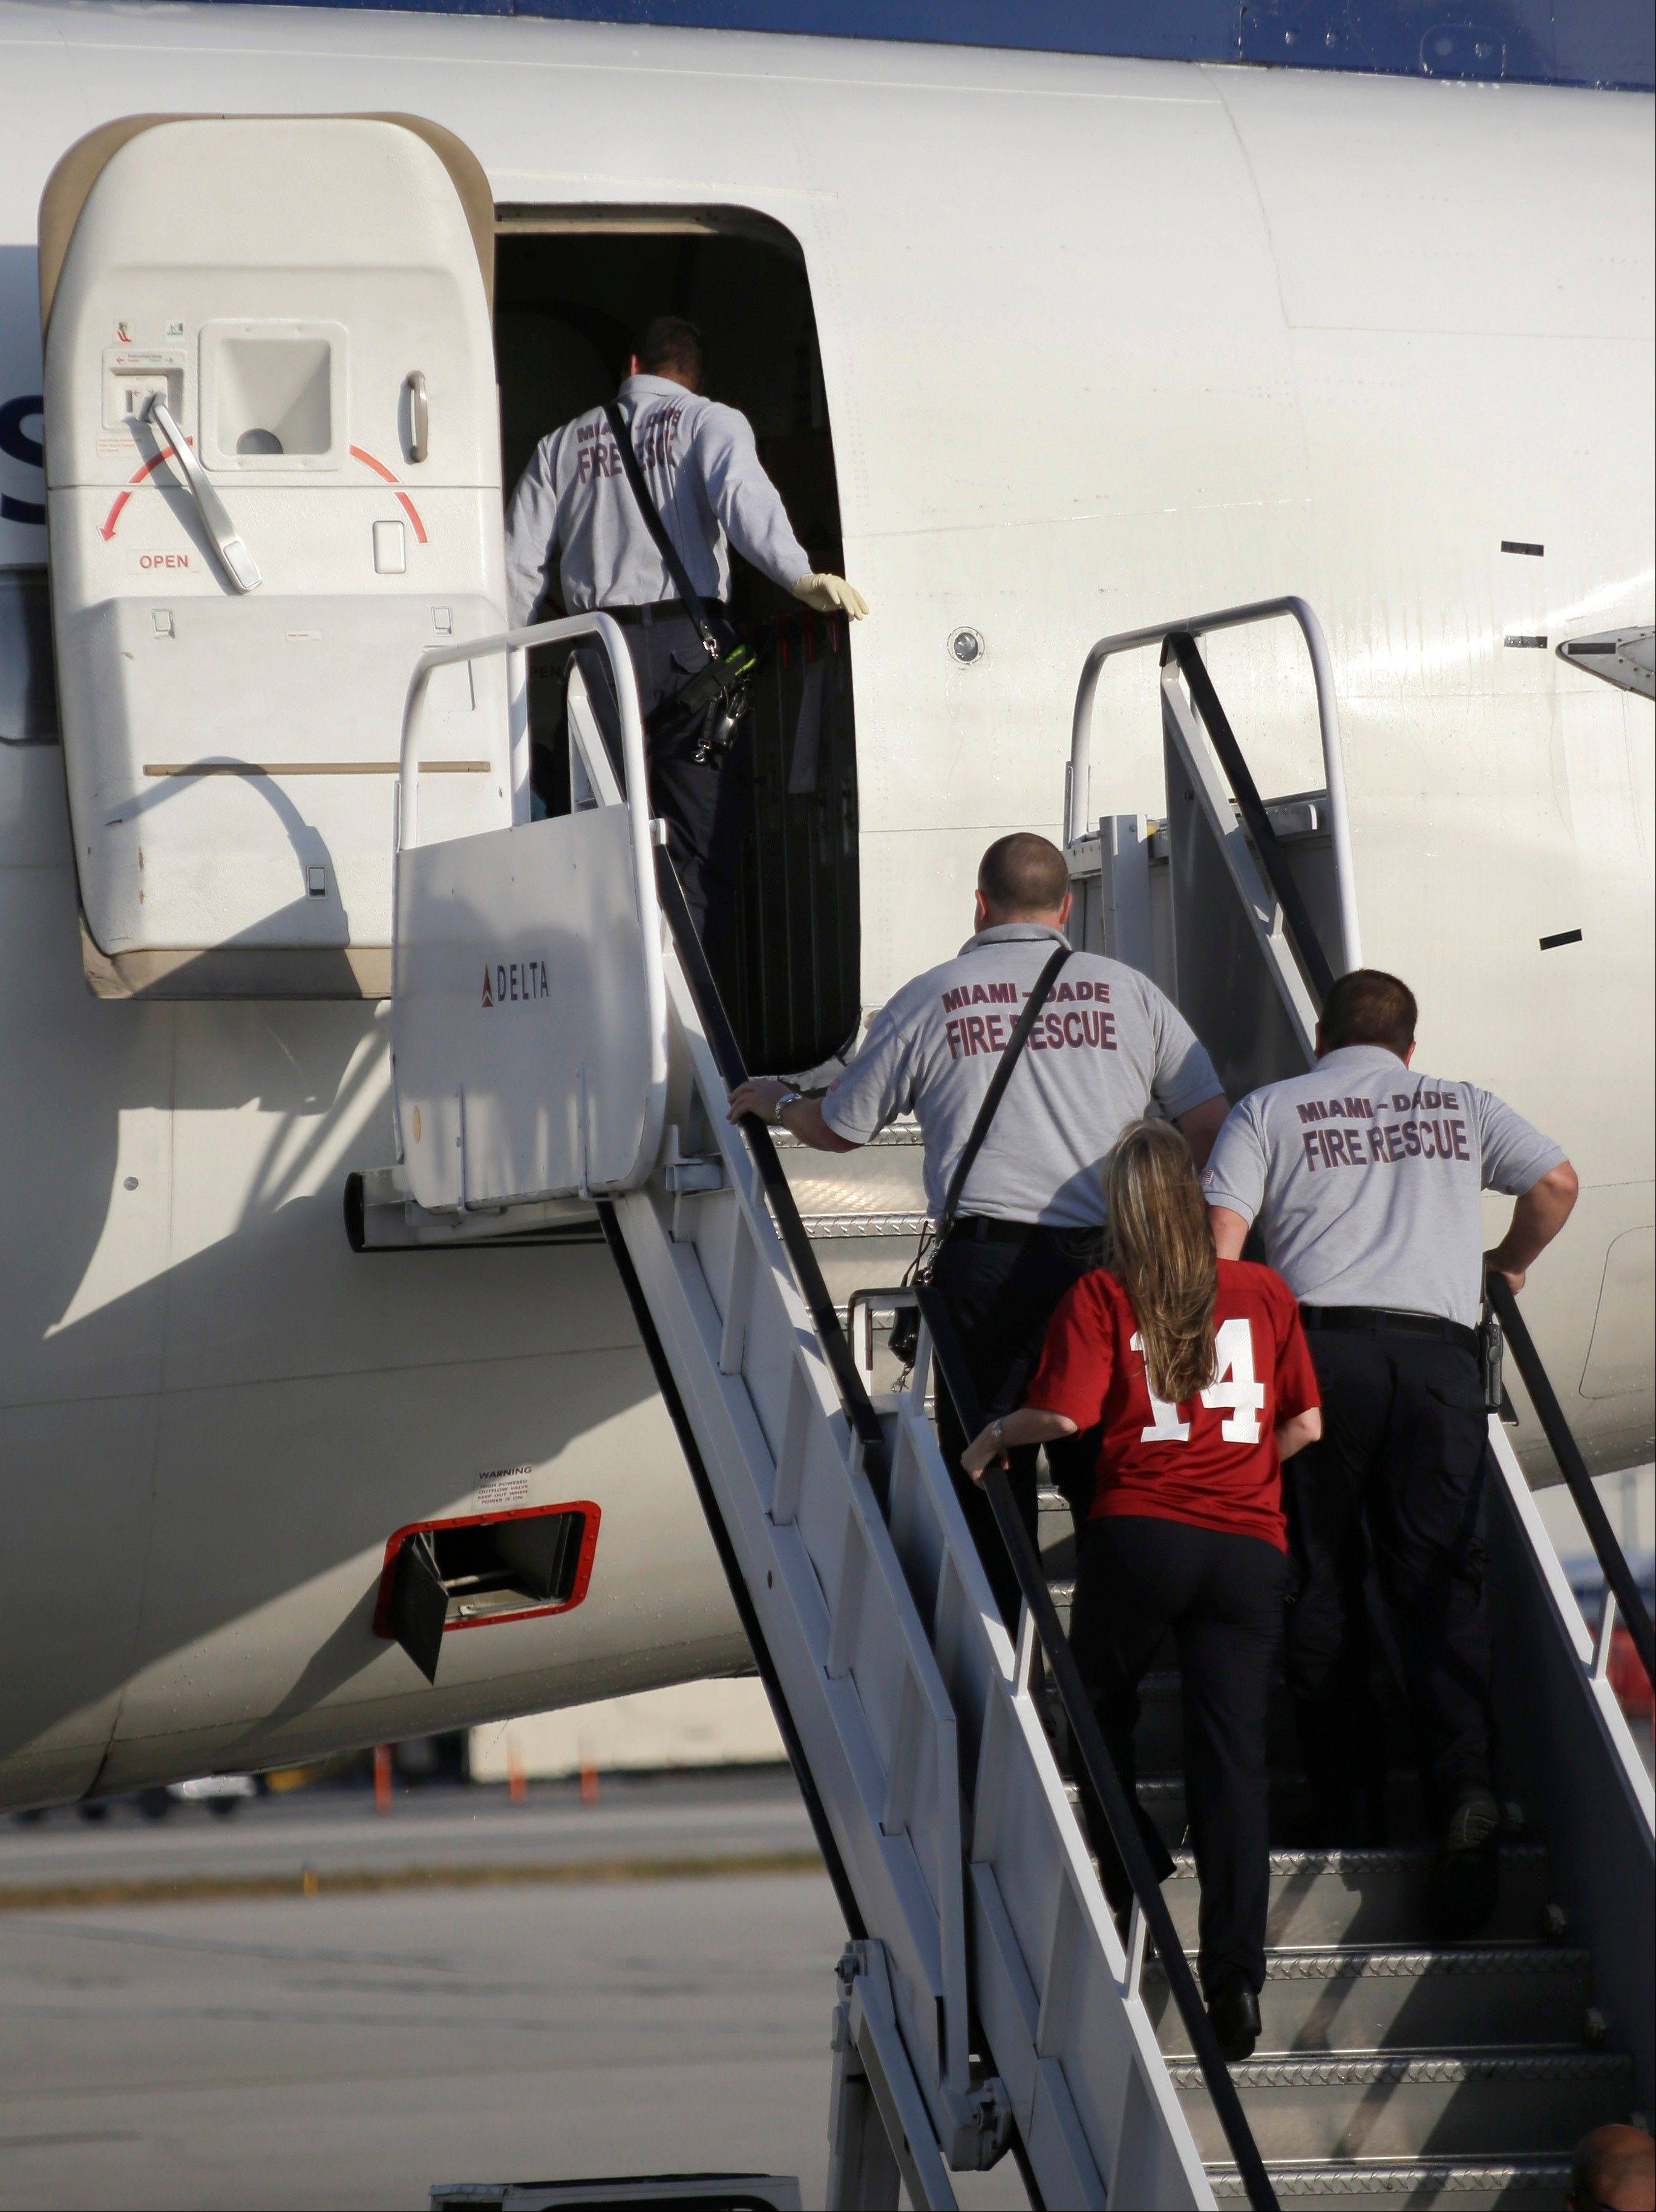 Paramedics board a plane carrying the Alabama football team Wednesday after their arrival at Miami International Airport. Reserve offensive lineman Arie Koundjio was treated for dehydration when the plane landed.